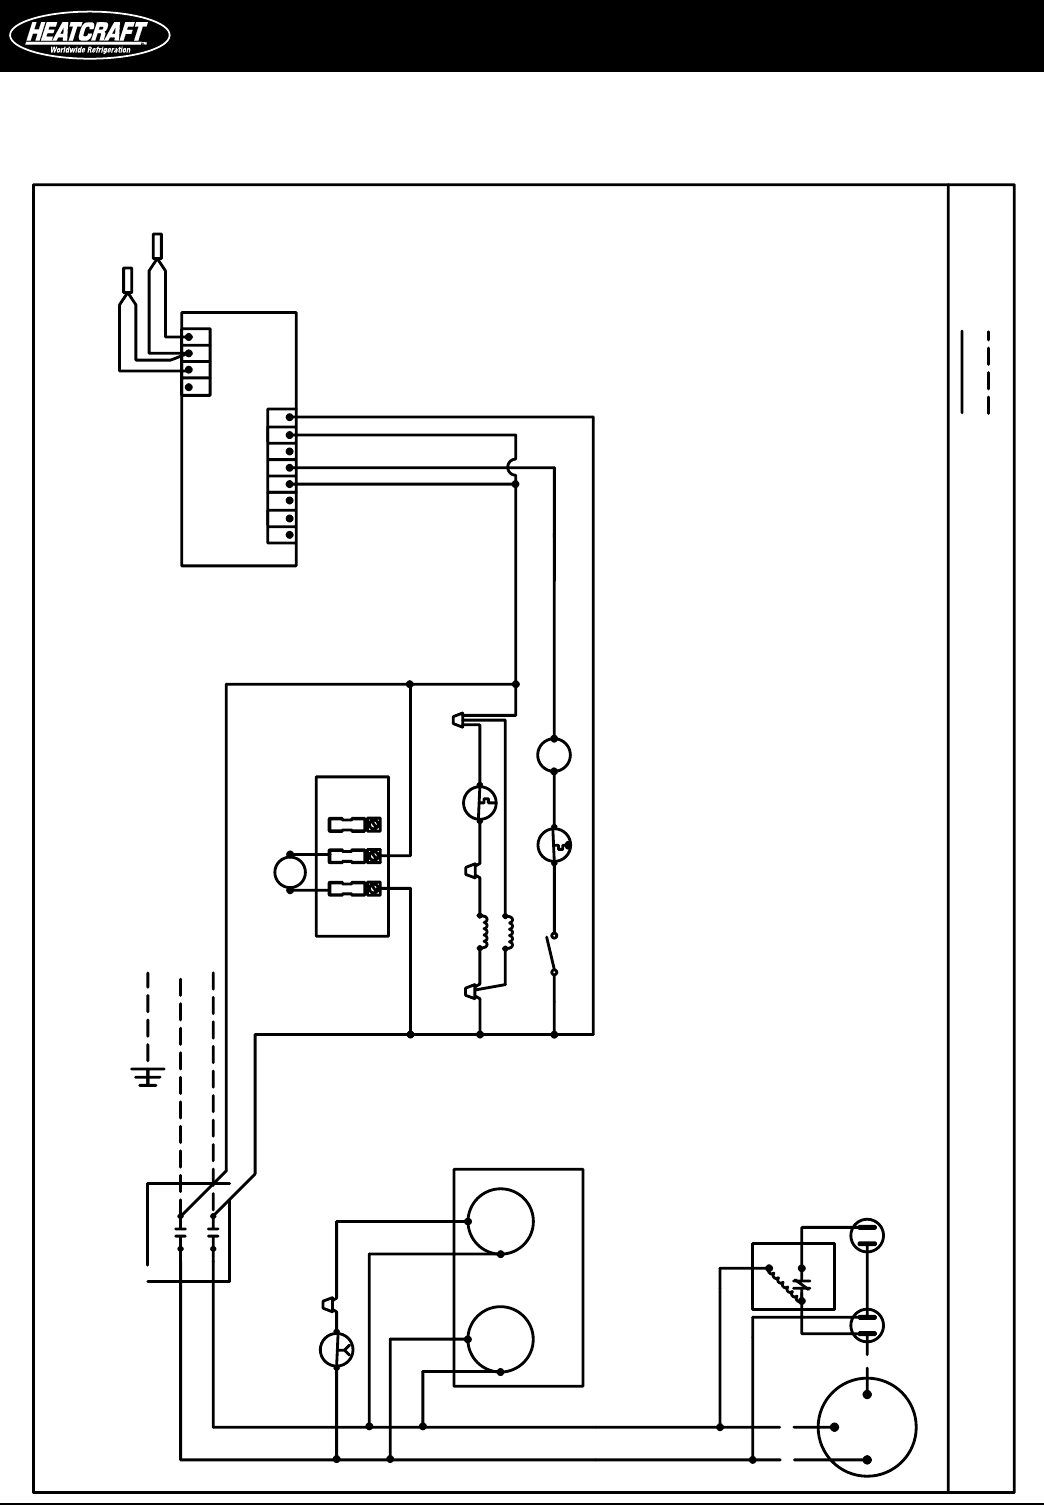 55587f91 c859 def4 0921 730c5709c050 bg10 page 16 of heatcraft refrigeration products refrigerator pro3 user refrigerator wiring diagram pdf at gsmx.co